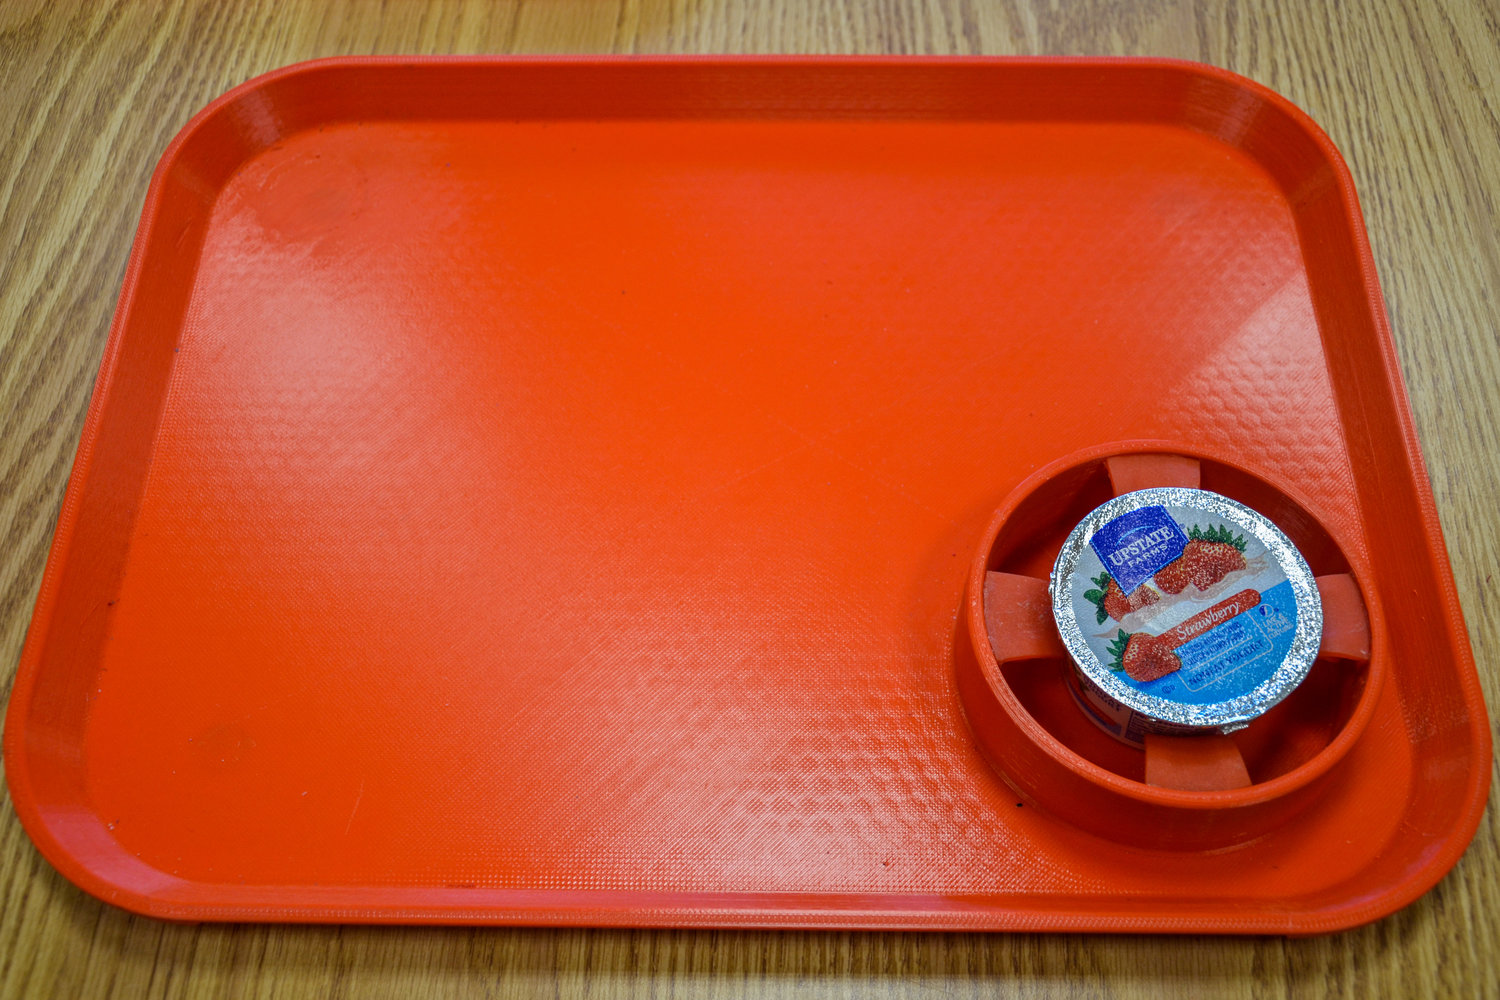 Designed by speech pathologist Ilana Herman, the independent feeding tray features four flaps attached to a molded cup and is meant to help those struggling with neurological and orthopedic injuries eat independently. The tray is still in development. .